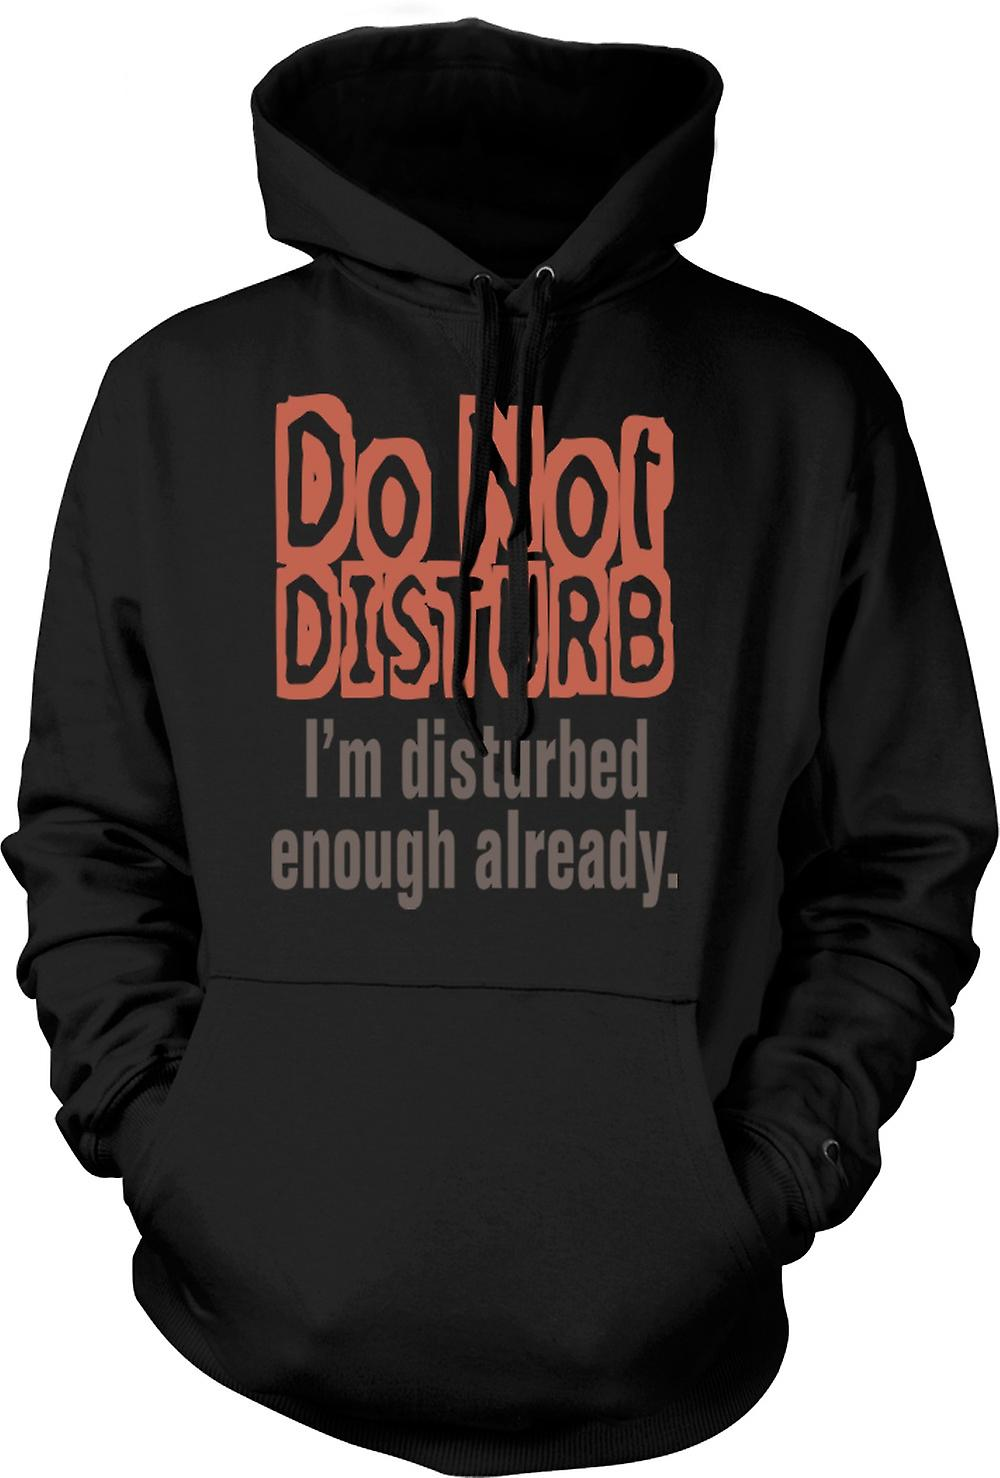 Mens Hoodie - Do Not Disturb I'm Disturbed - Quote